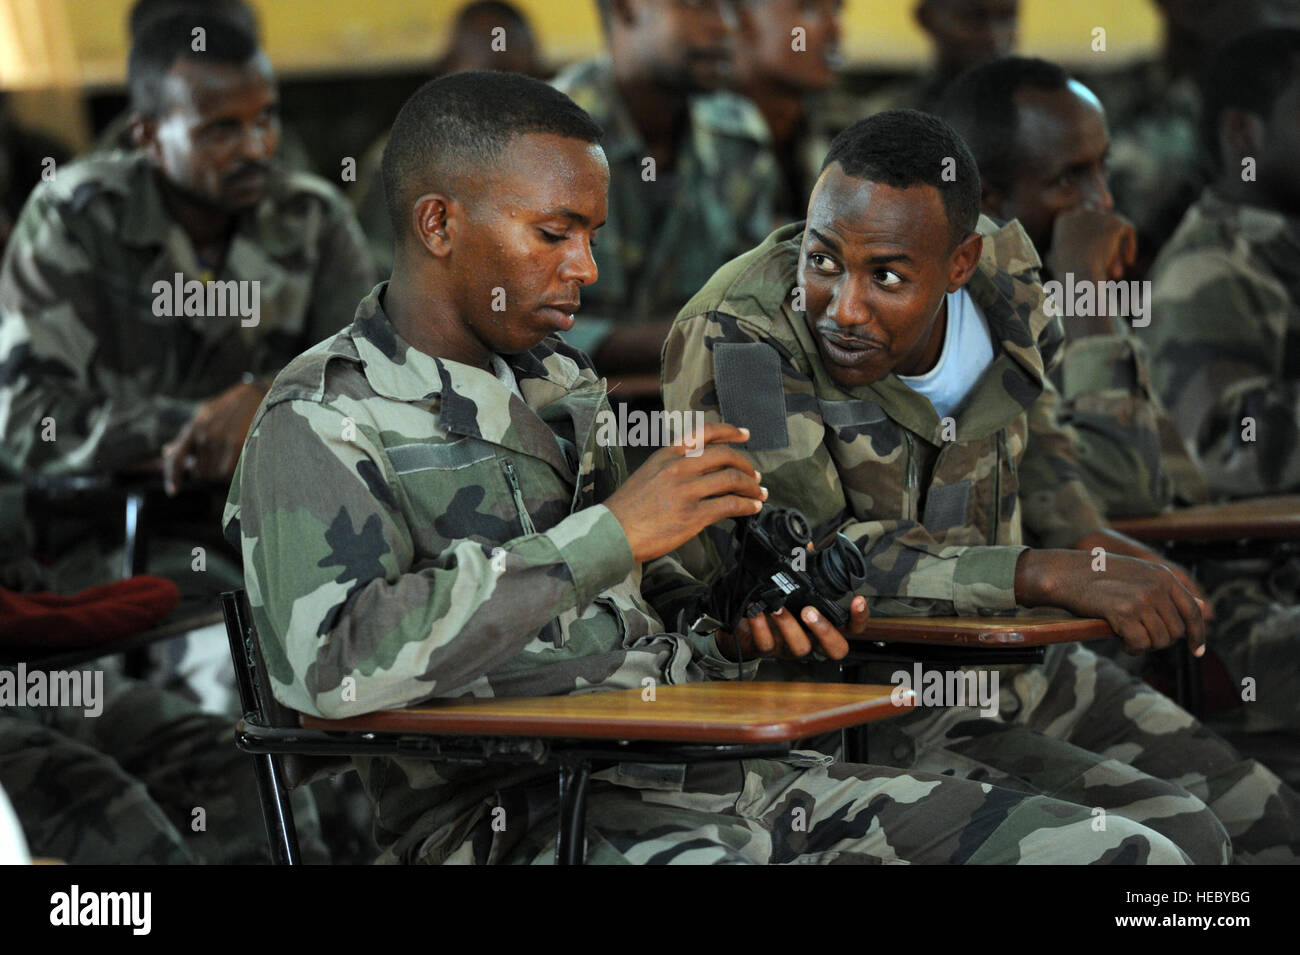 Djiboutian army soldiers discuss a set of PVS-7 Night Vision Goggles during an NVG class in Arta, Djibouti, on March Stock Photo